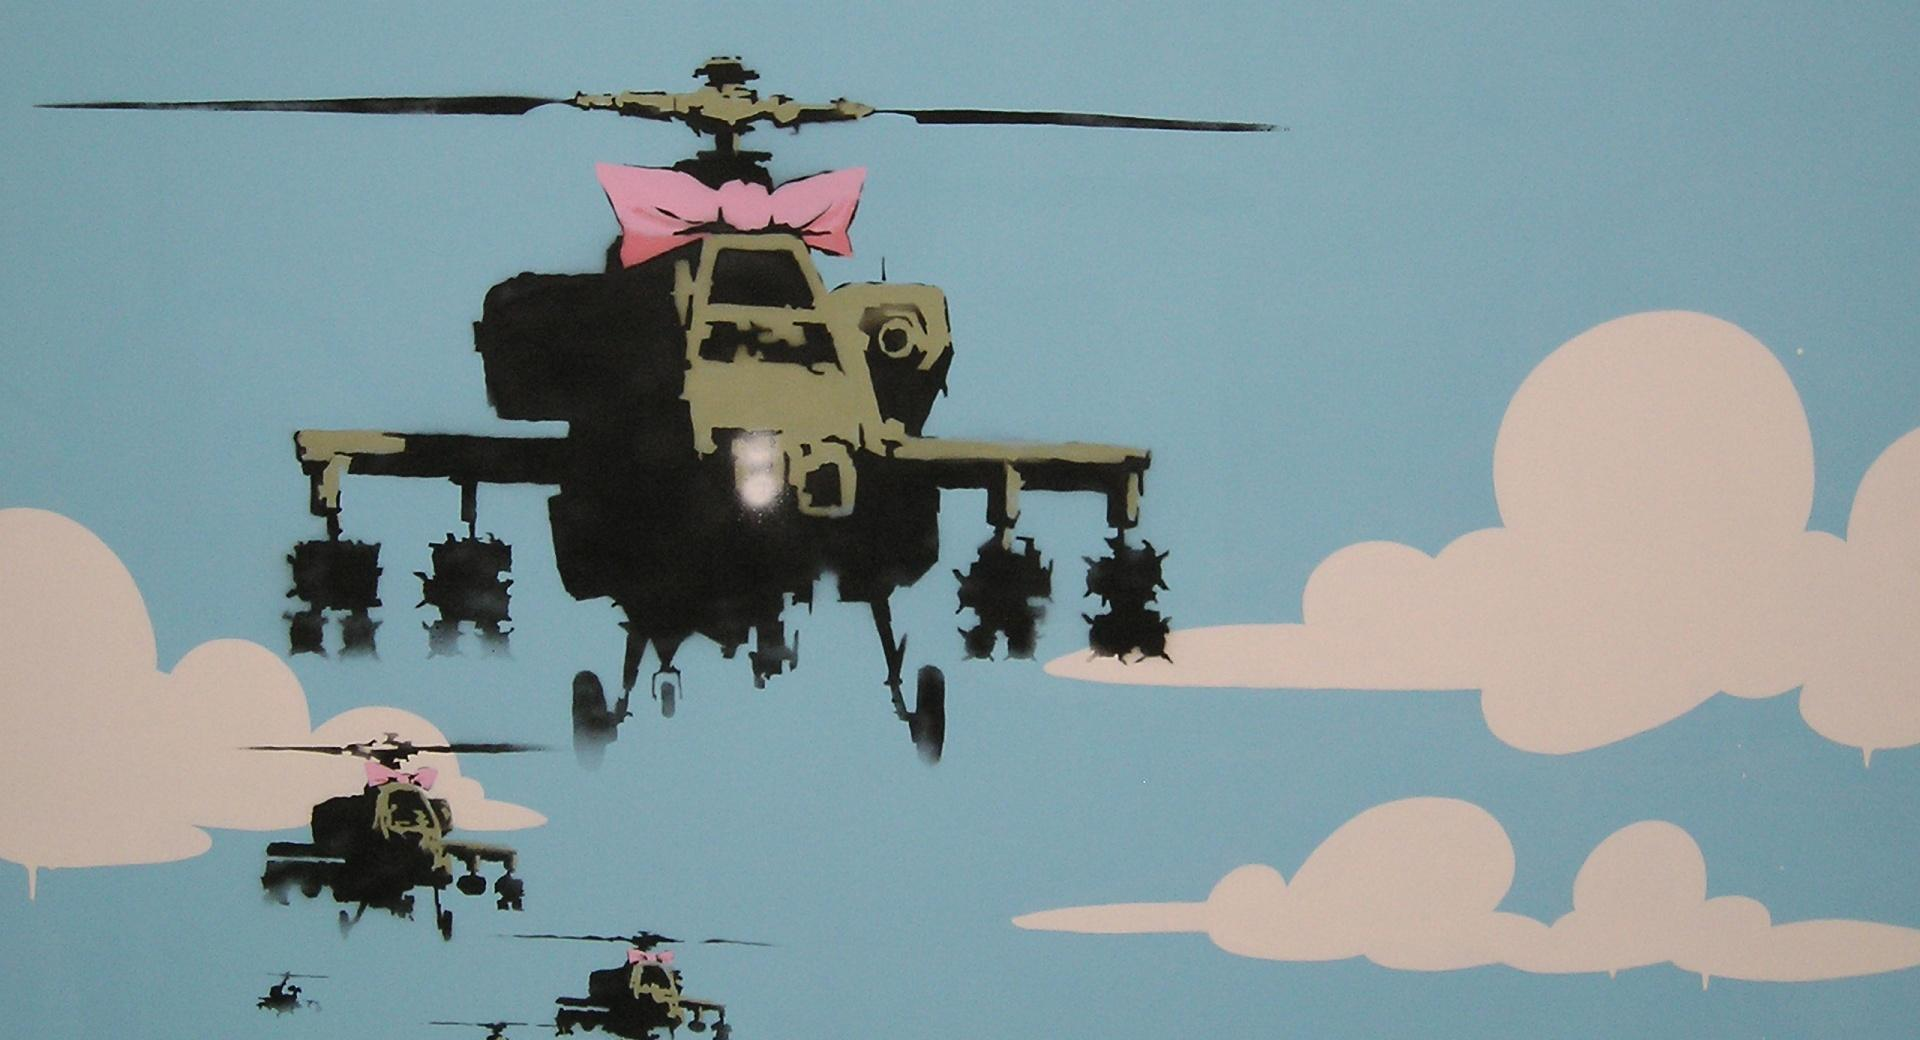 Funny Cute Helicopters wallpapers HD quality